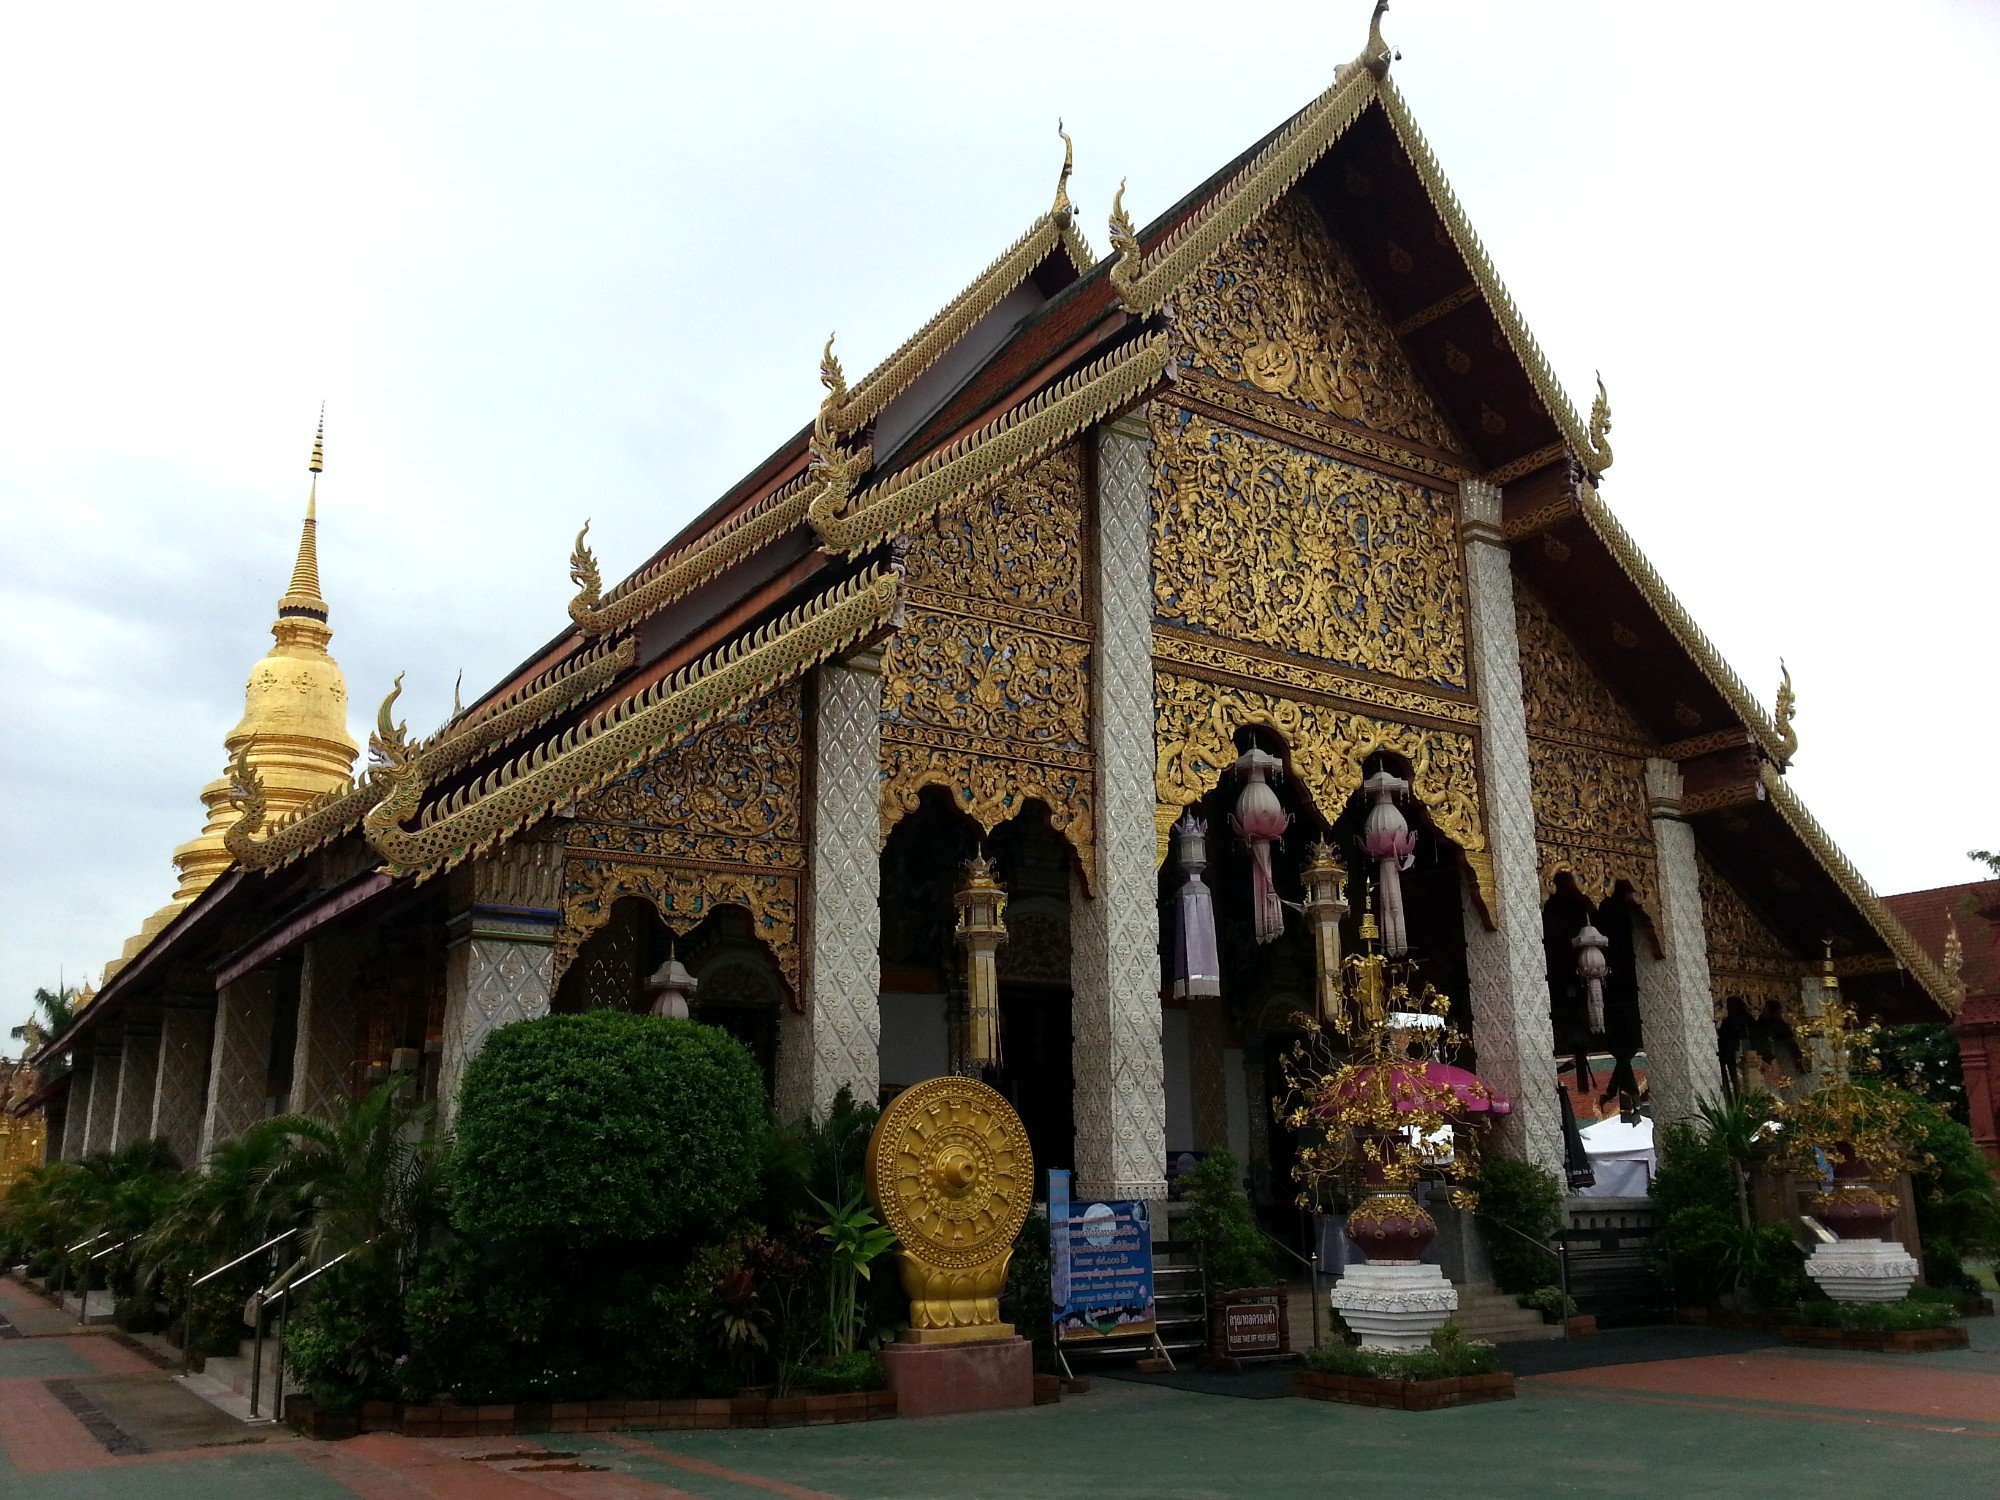 Front entrance to the assembly hall at Wat Phra That Hariphunchai